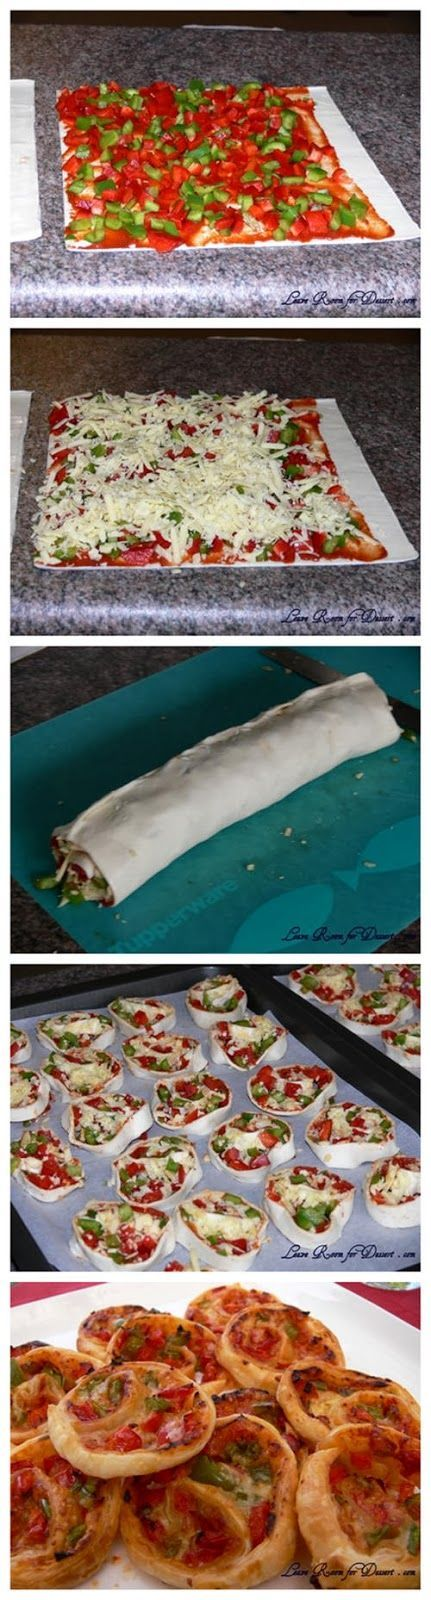 Pizza Wheels (make a very simple pizza: Ingredients: 4 puff pastry dough (roll puff pastry or frame with four combine the puff pastry sheets, roller can be made in all a bit off) 6 tablespoons tomato paste 1 red pepper, chopped 1 green pepper, chopped grated cheese